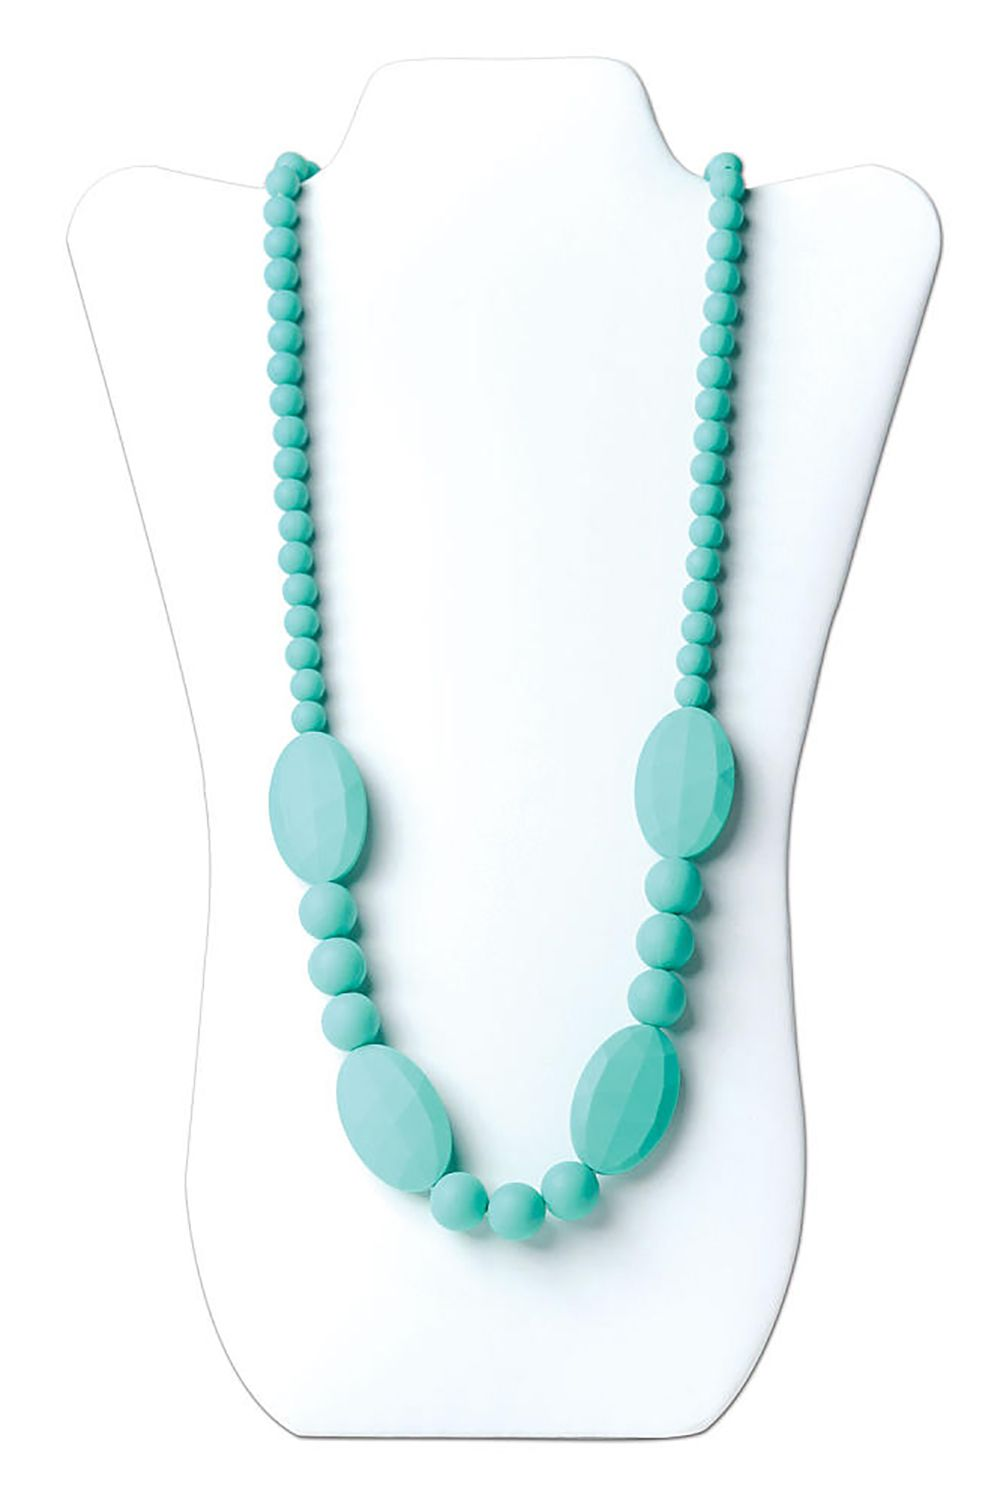 """<p> Best invention ever? These colorful necklaces not only add alittle something something to an outfit, but they are totally baby-safe forchewing.</p><p><span class=""""redactor-invisible-space"""" data-verified=""""redactor"""" data-redactor-tag=""""span"""" data-redactor-class=""""redactor-invisible-space""""></span></p><p>Starting at $18, <a href=""""http://www.target.com/p/nixi-by-bumkins-teething-jewelry-collection/-/A-15068624"""" target=""""_blank"""" data-tracking-id=""""recirc-text-link"""">target.com</a></p>"""